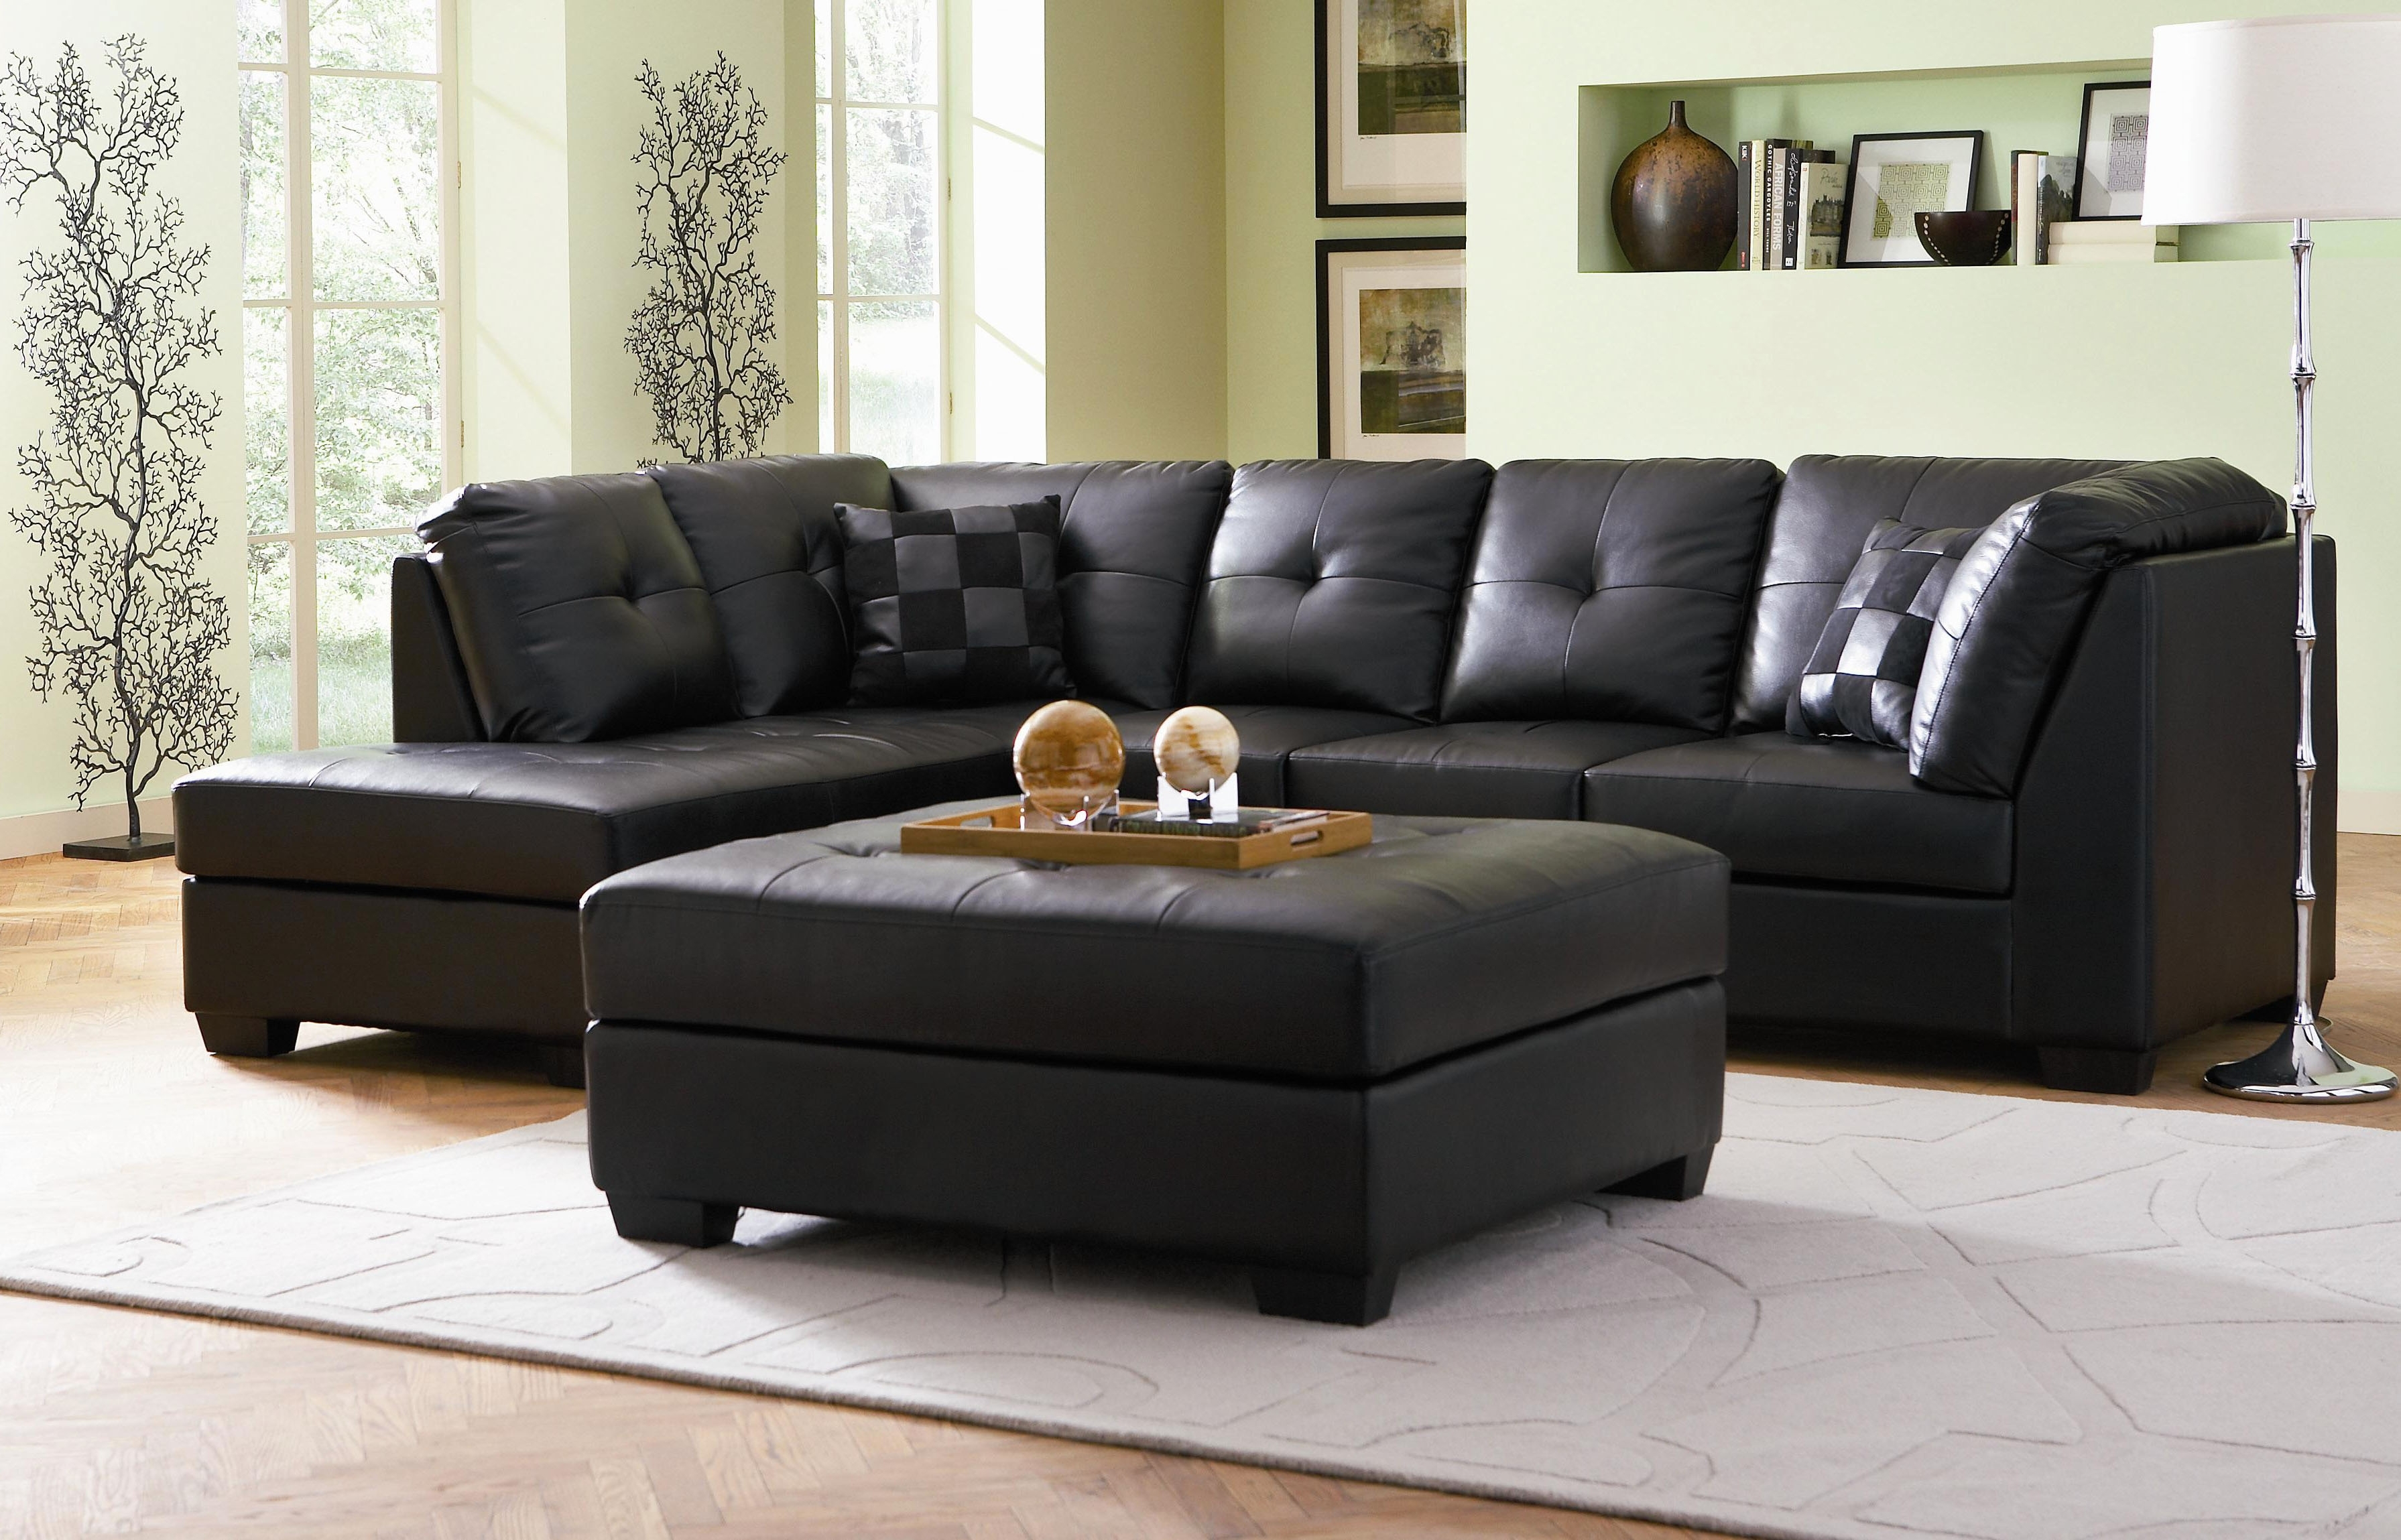 Leather Sectional Sofa For Small Living Room In Black Color With Intended For Leather Sectional Sofas With Ottoman (Image 9 of 10)